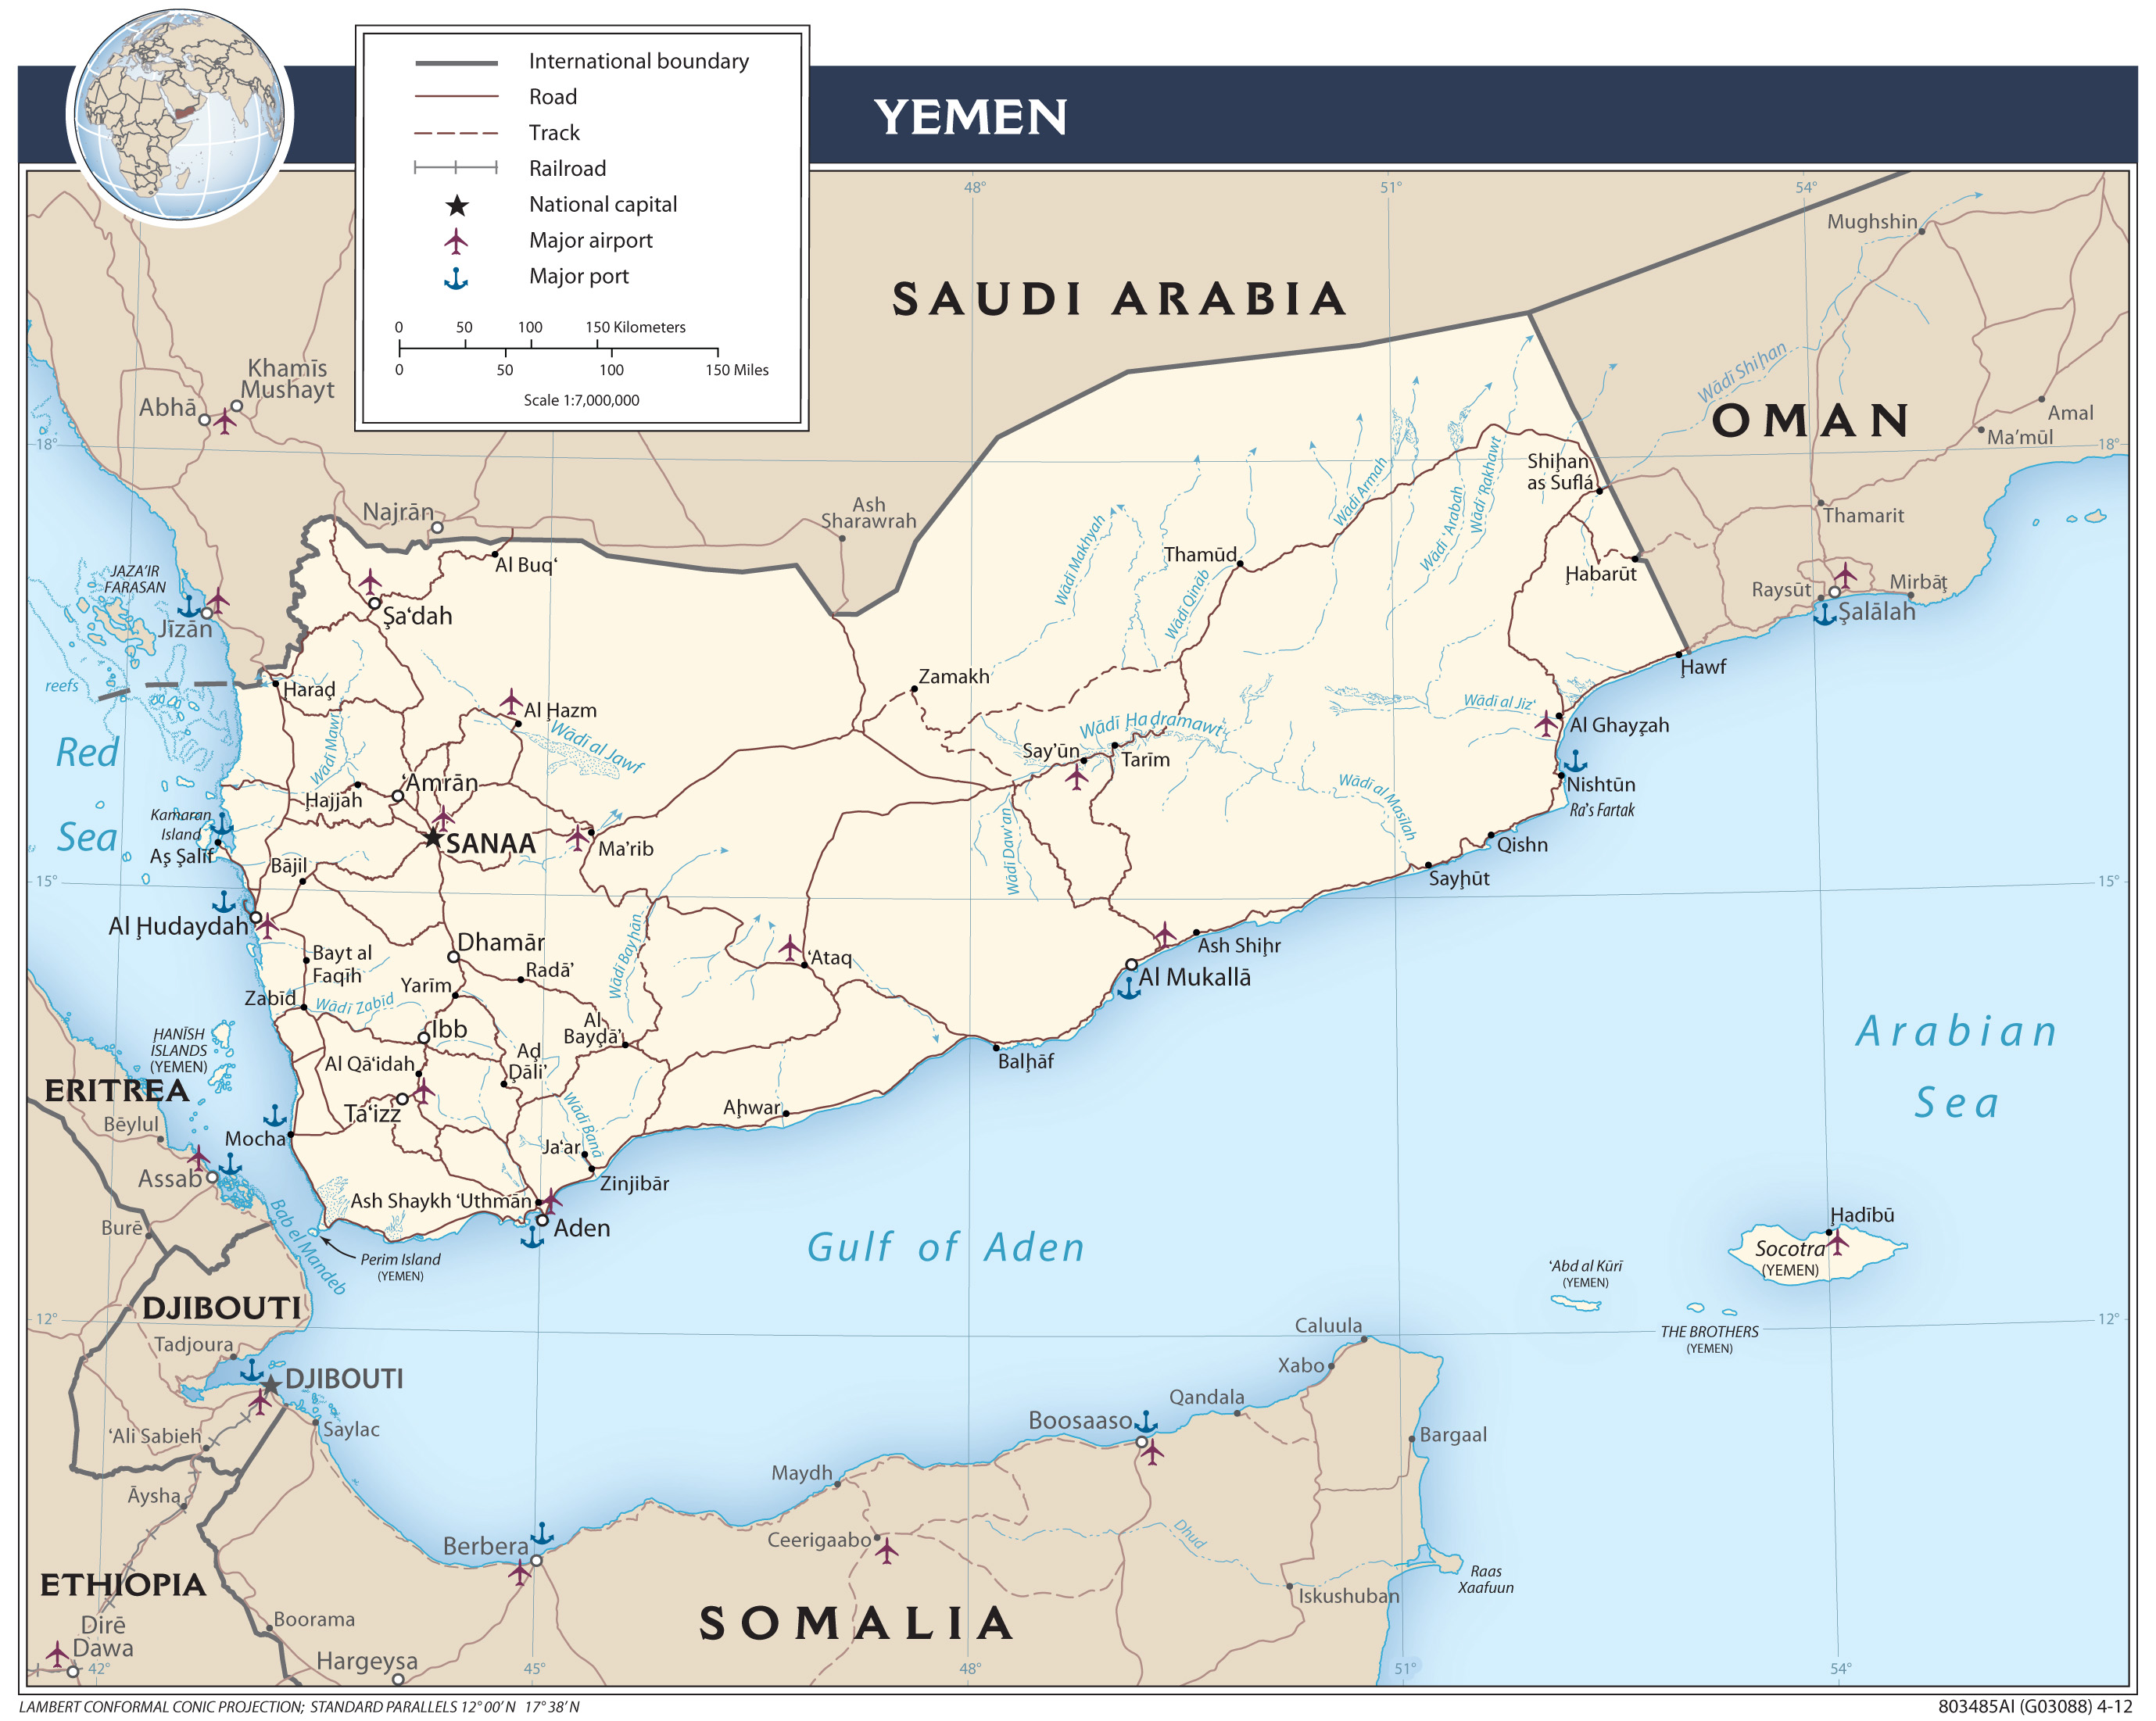 image relating to Printable Maps of the Middle East named Yemen Maps - Perry-Castañeda Map Variety - UT Library On-line